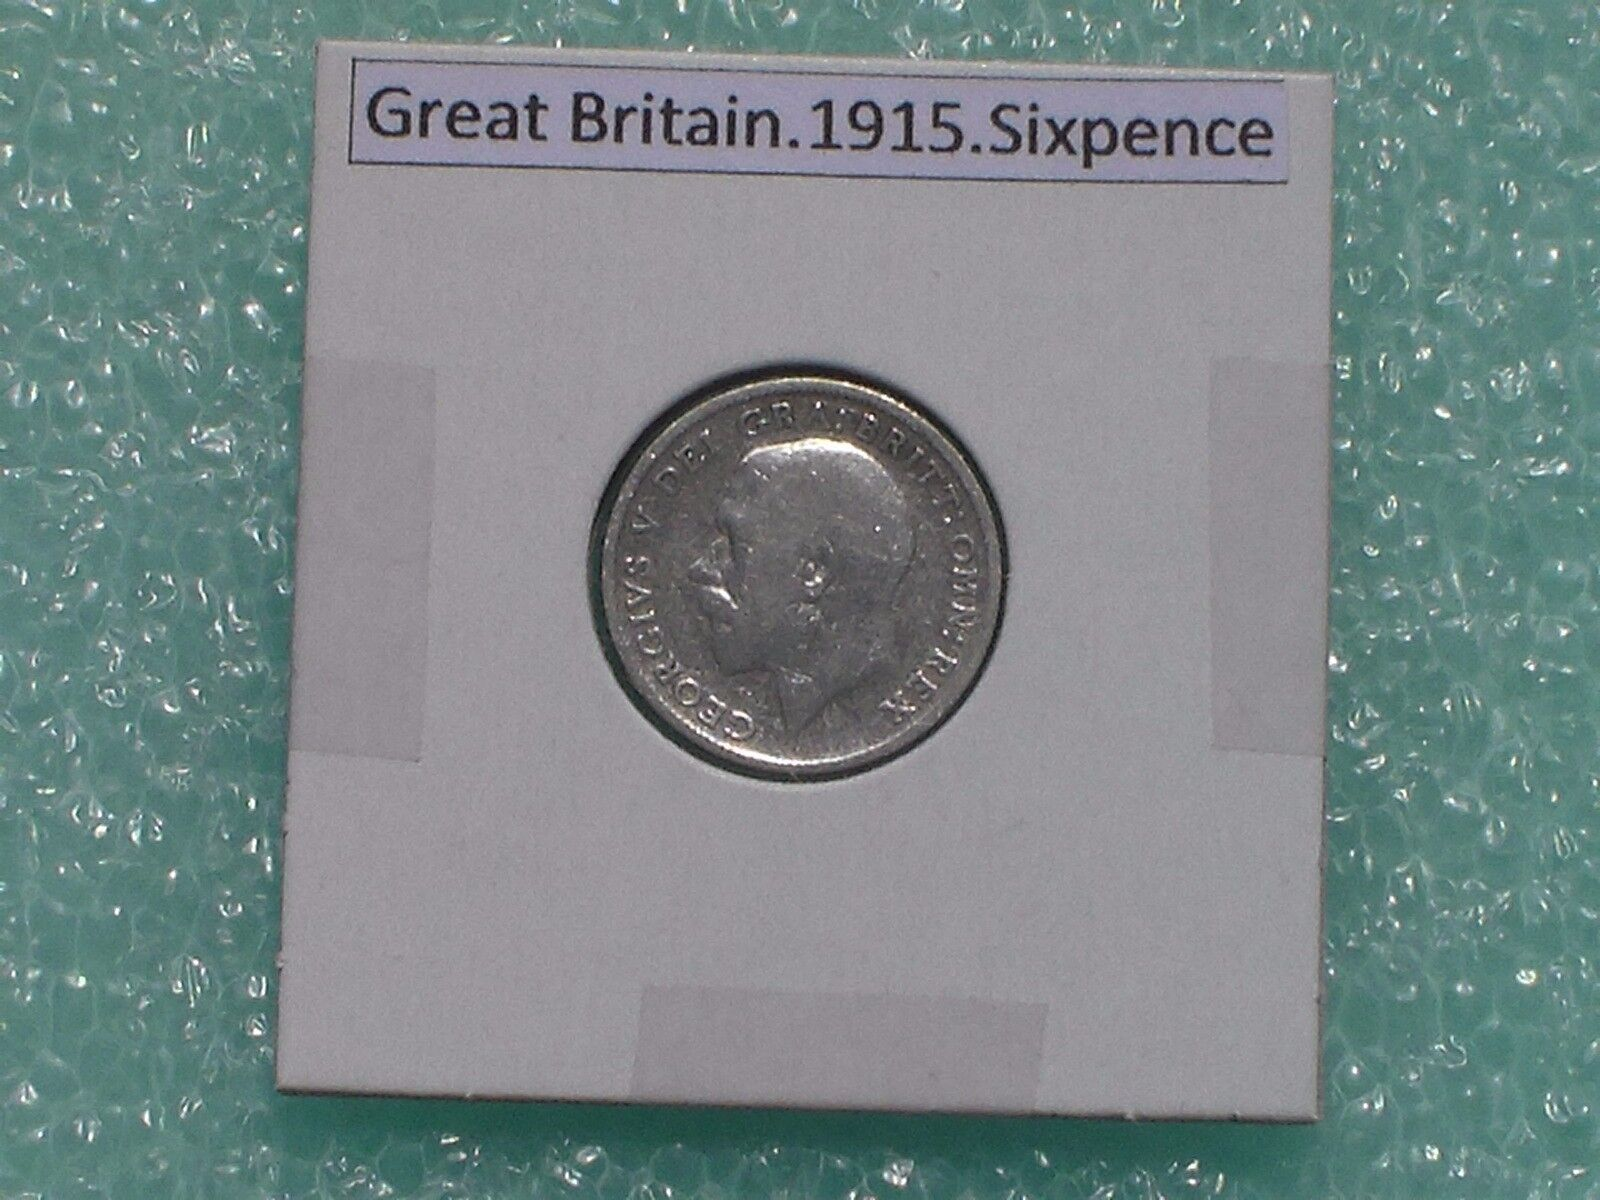 GREAT BRITAIN - 1915 SIXPENCE - PREDECIMAL COIN. - $5.00